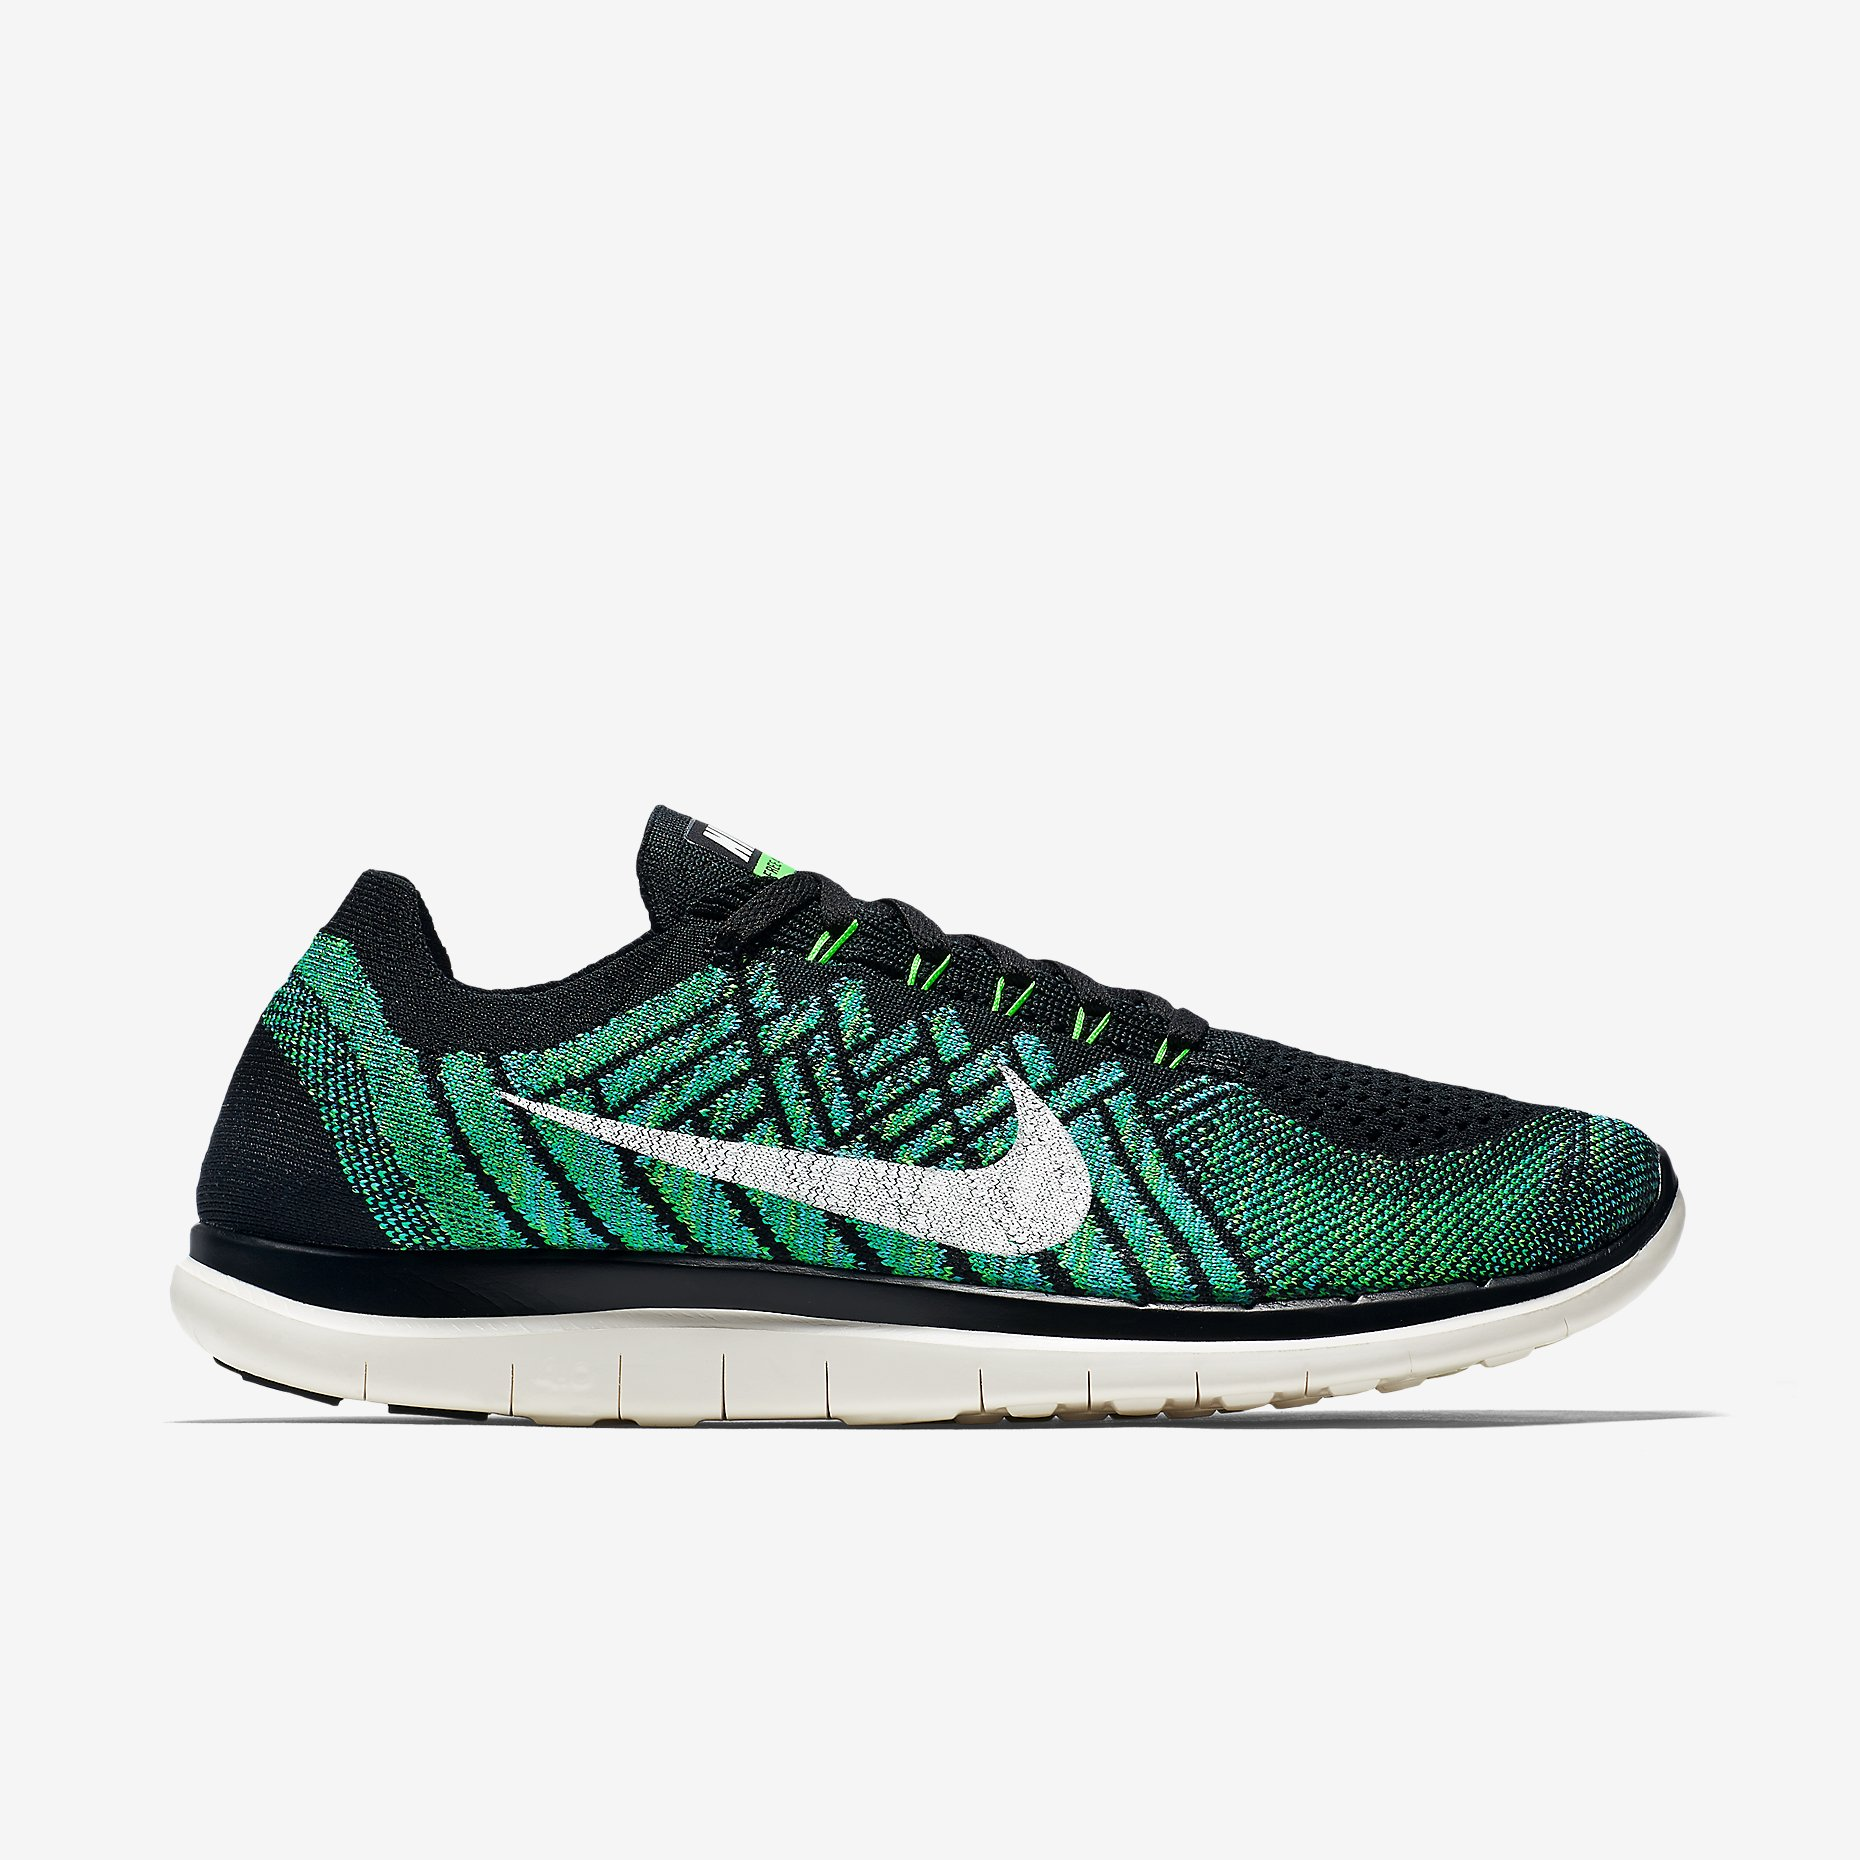 If you have ever been to a gym, you will know the Flyknit line well. Ultimately flexible and breathable, they stay comfortable and odor-free forever, and they come in a big range of funky patterns and colours.